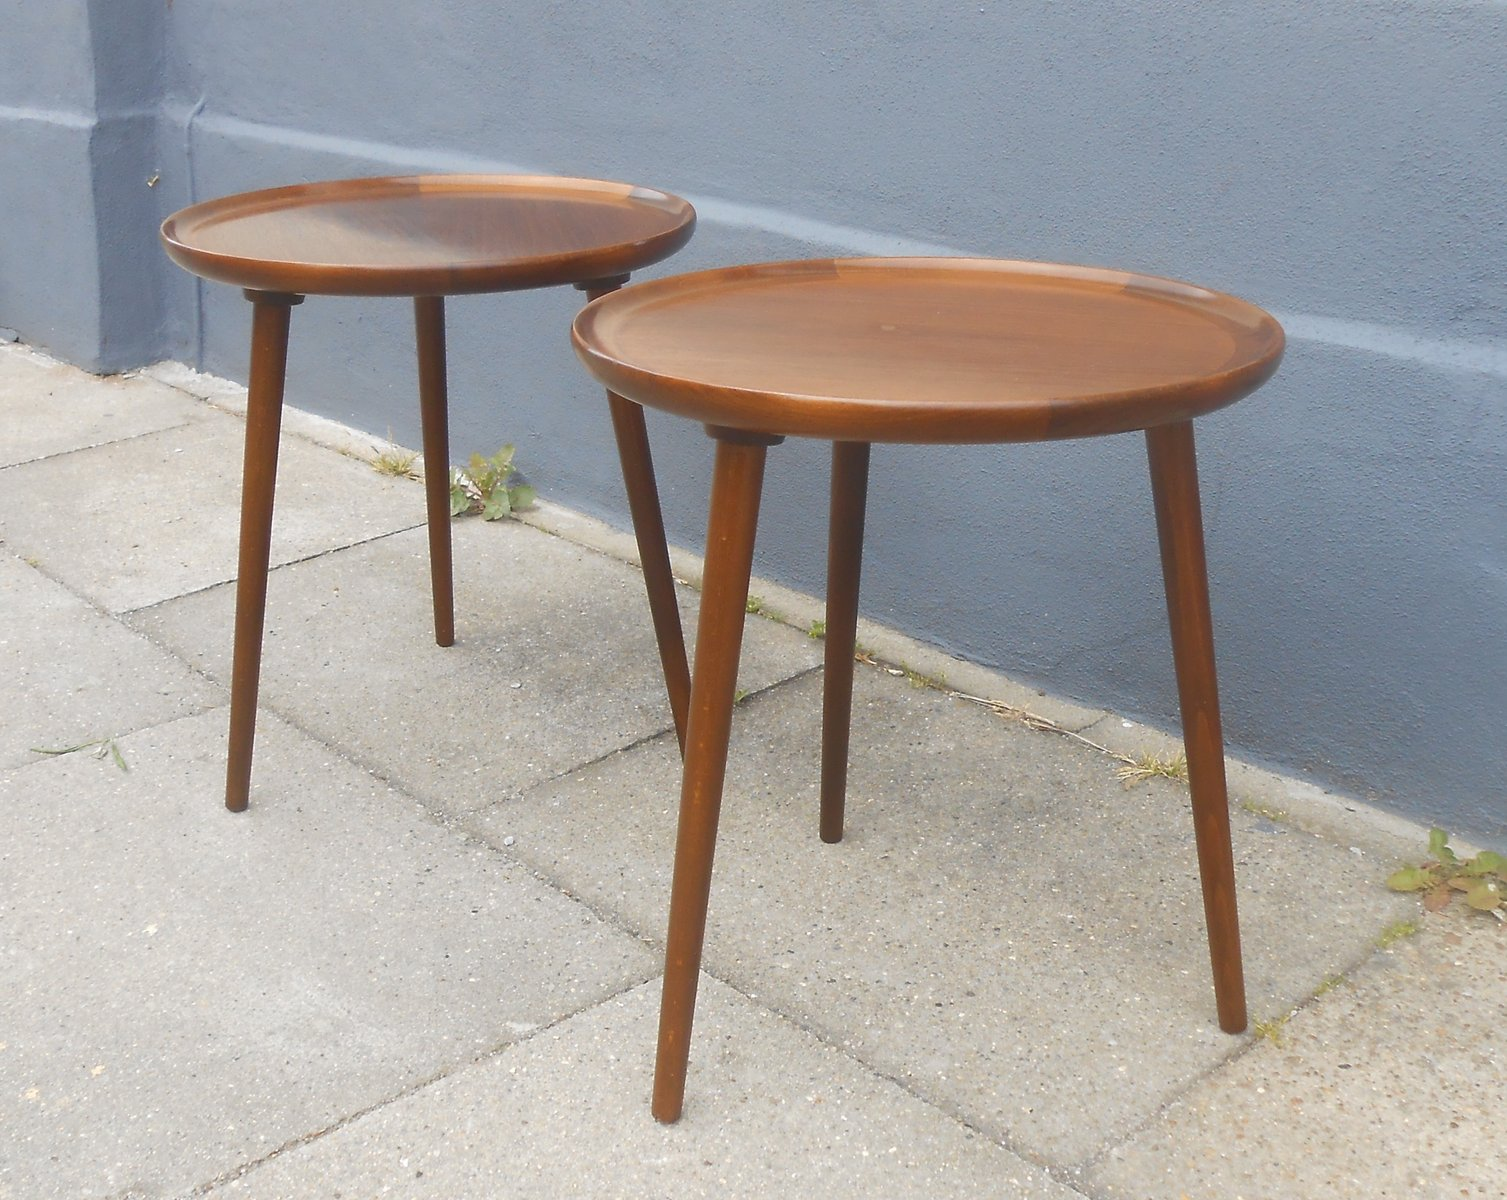 Three Legged Wooden Side Table Designs